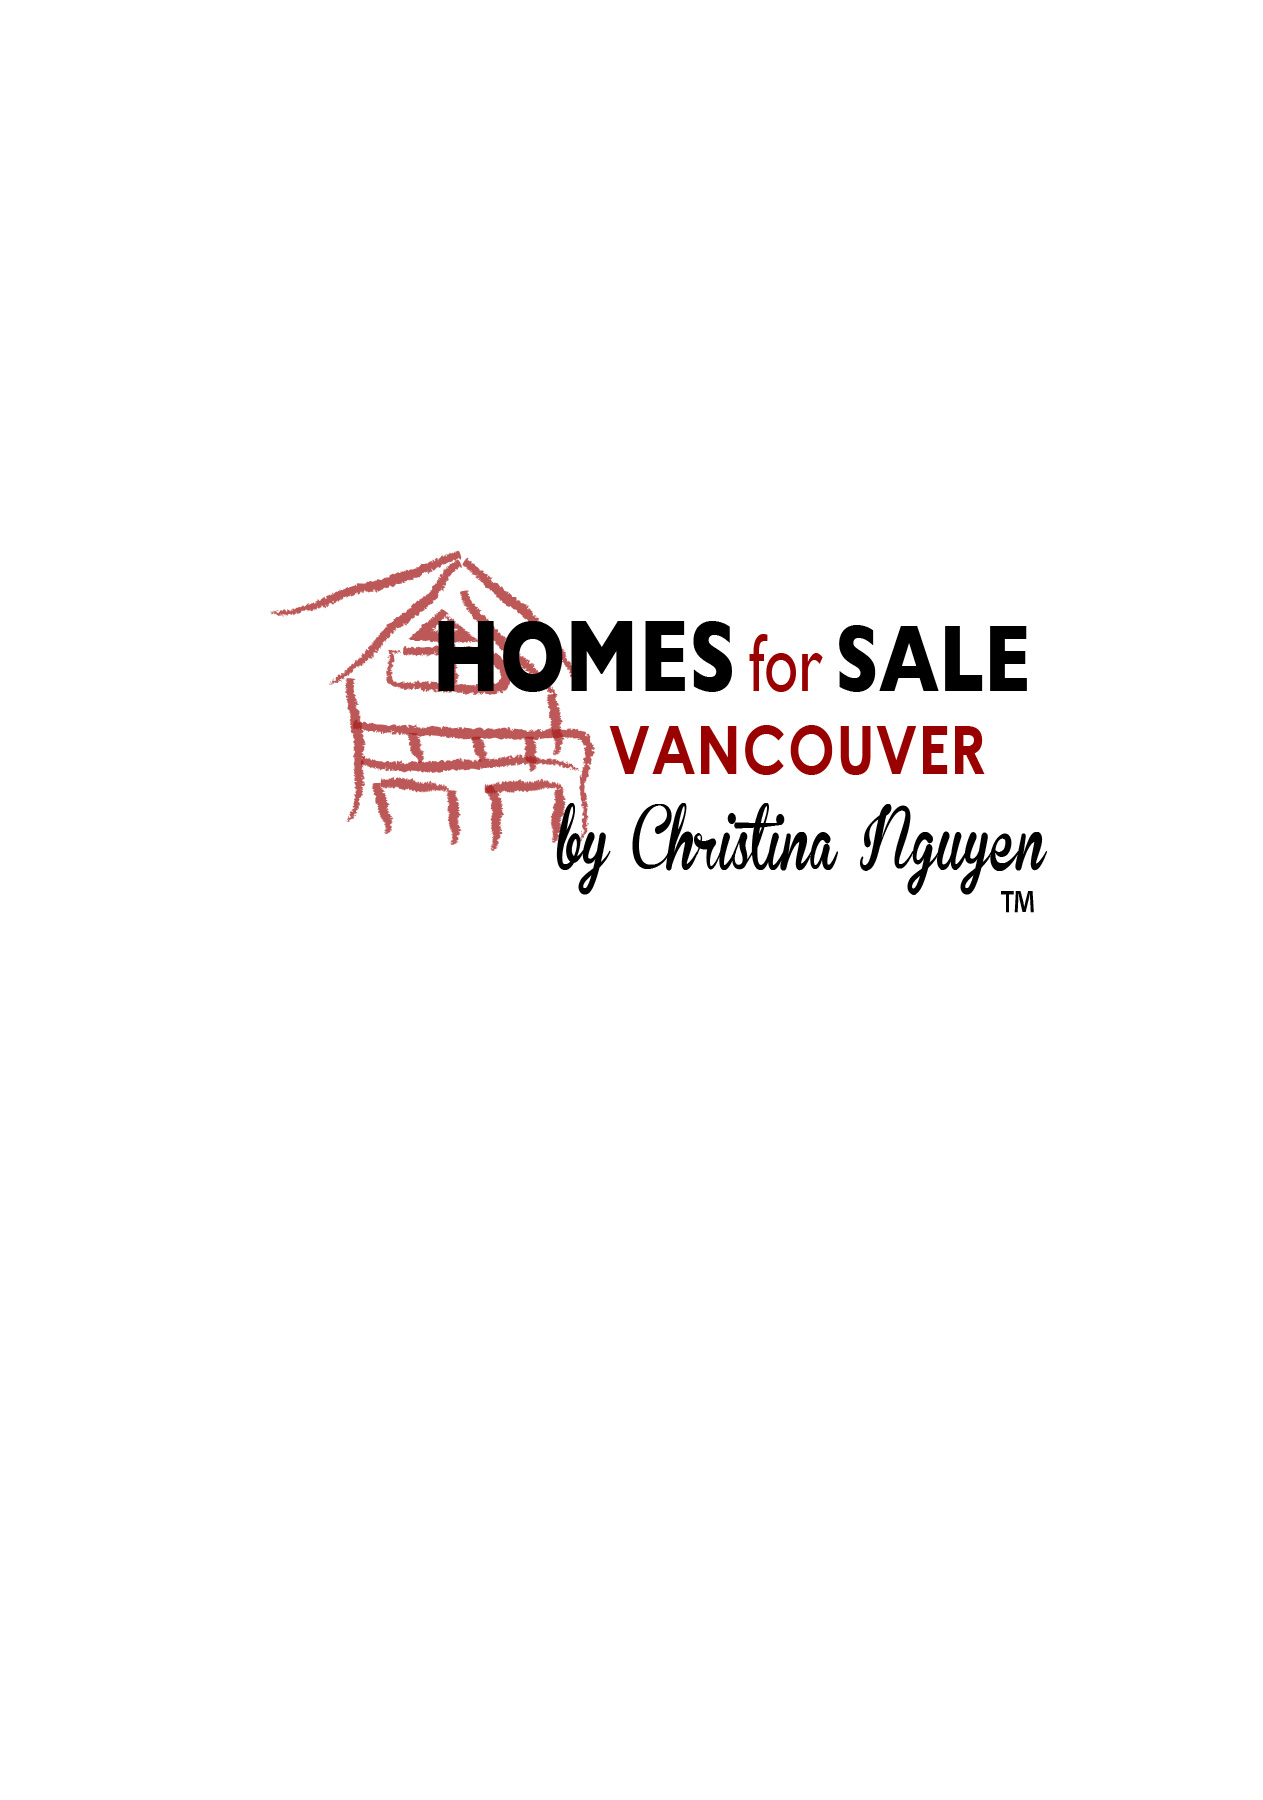 Logo Design by Nancy Grant - Entry No. 22 in the Logo Design Contest New Logo Design for HomeForSaleVancouver.